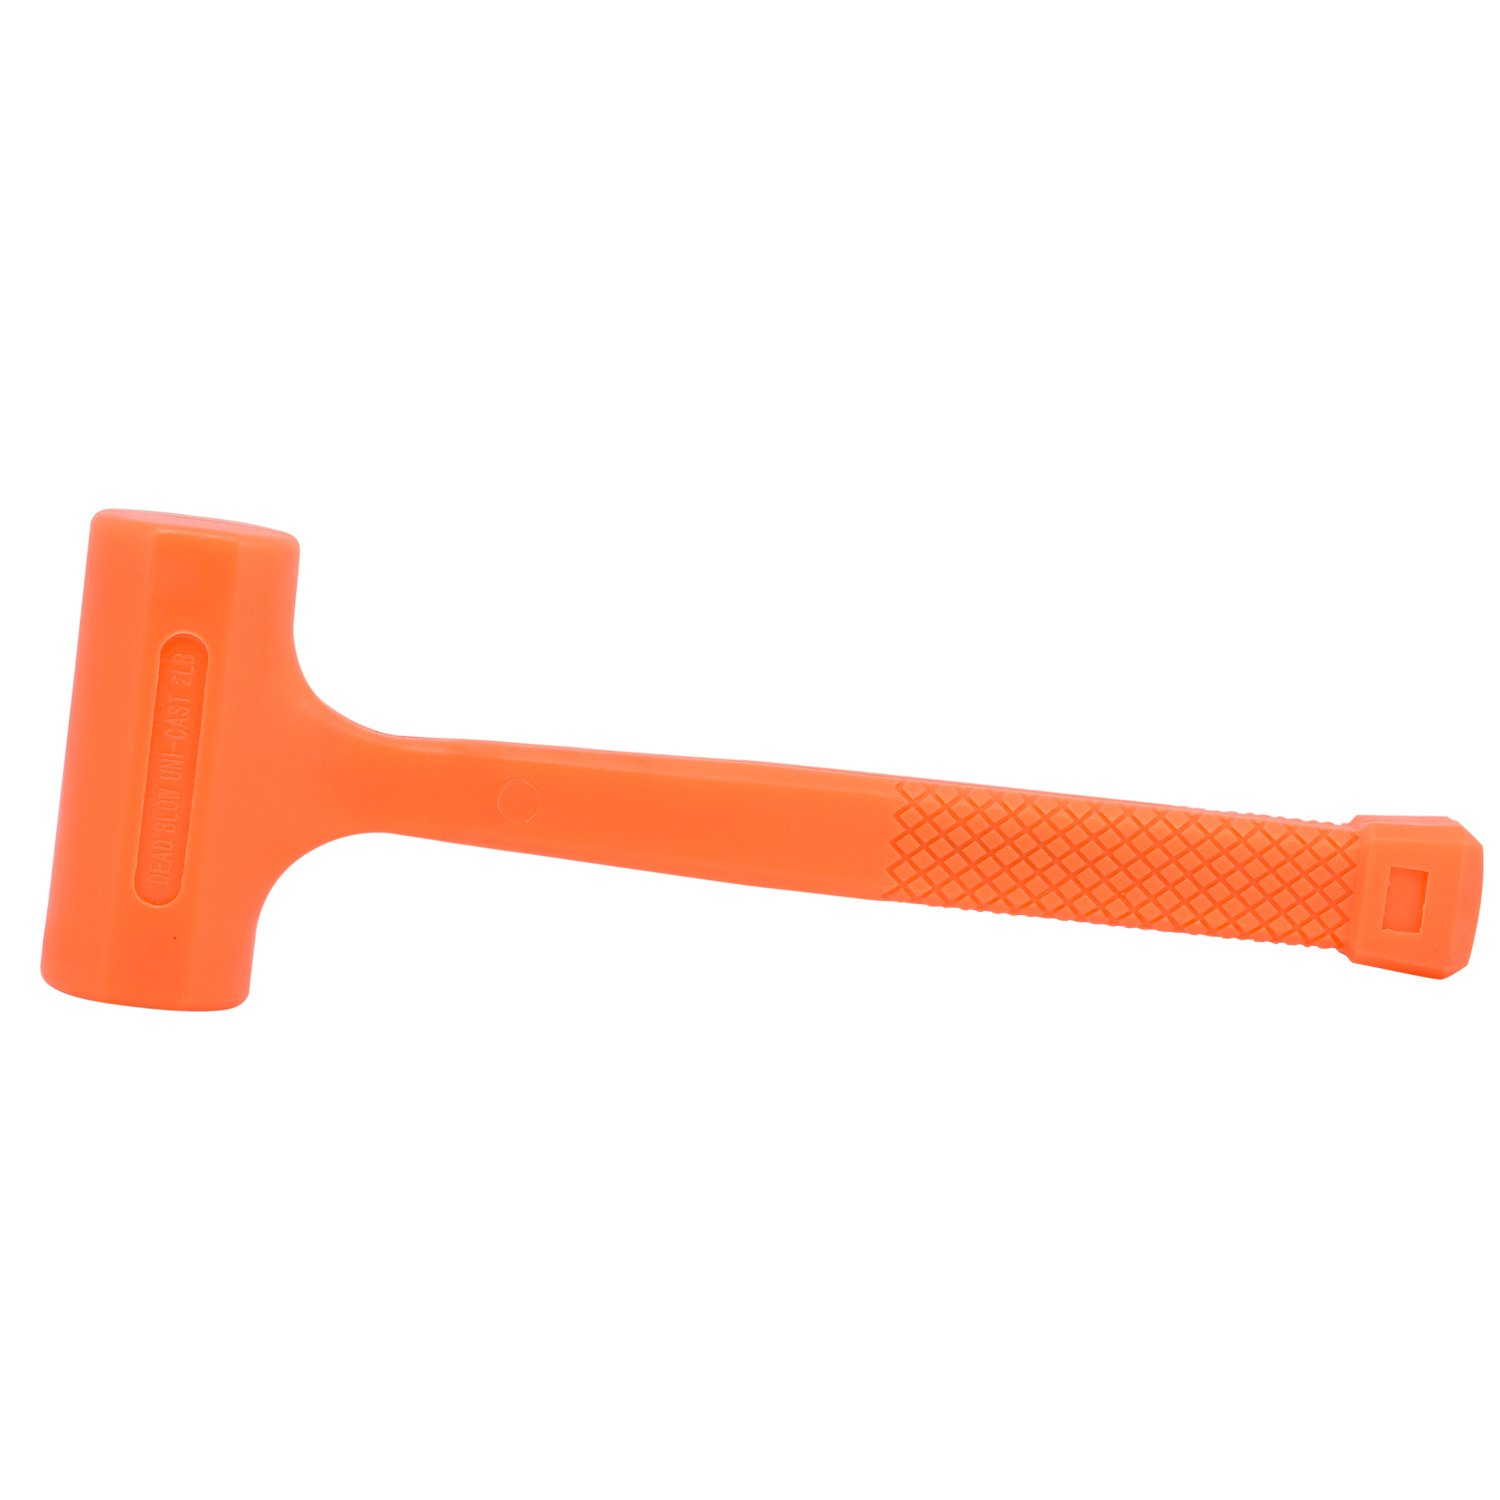 Neiko 02847A 2 LB Dead Blow Hammer, Neon Orange I Unibody Molded   Checkered Grip   Spark and Rebound Resistant by Neiko (Image #2)